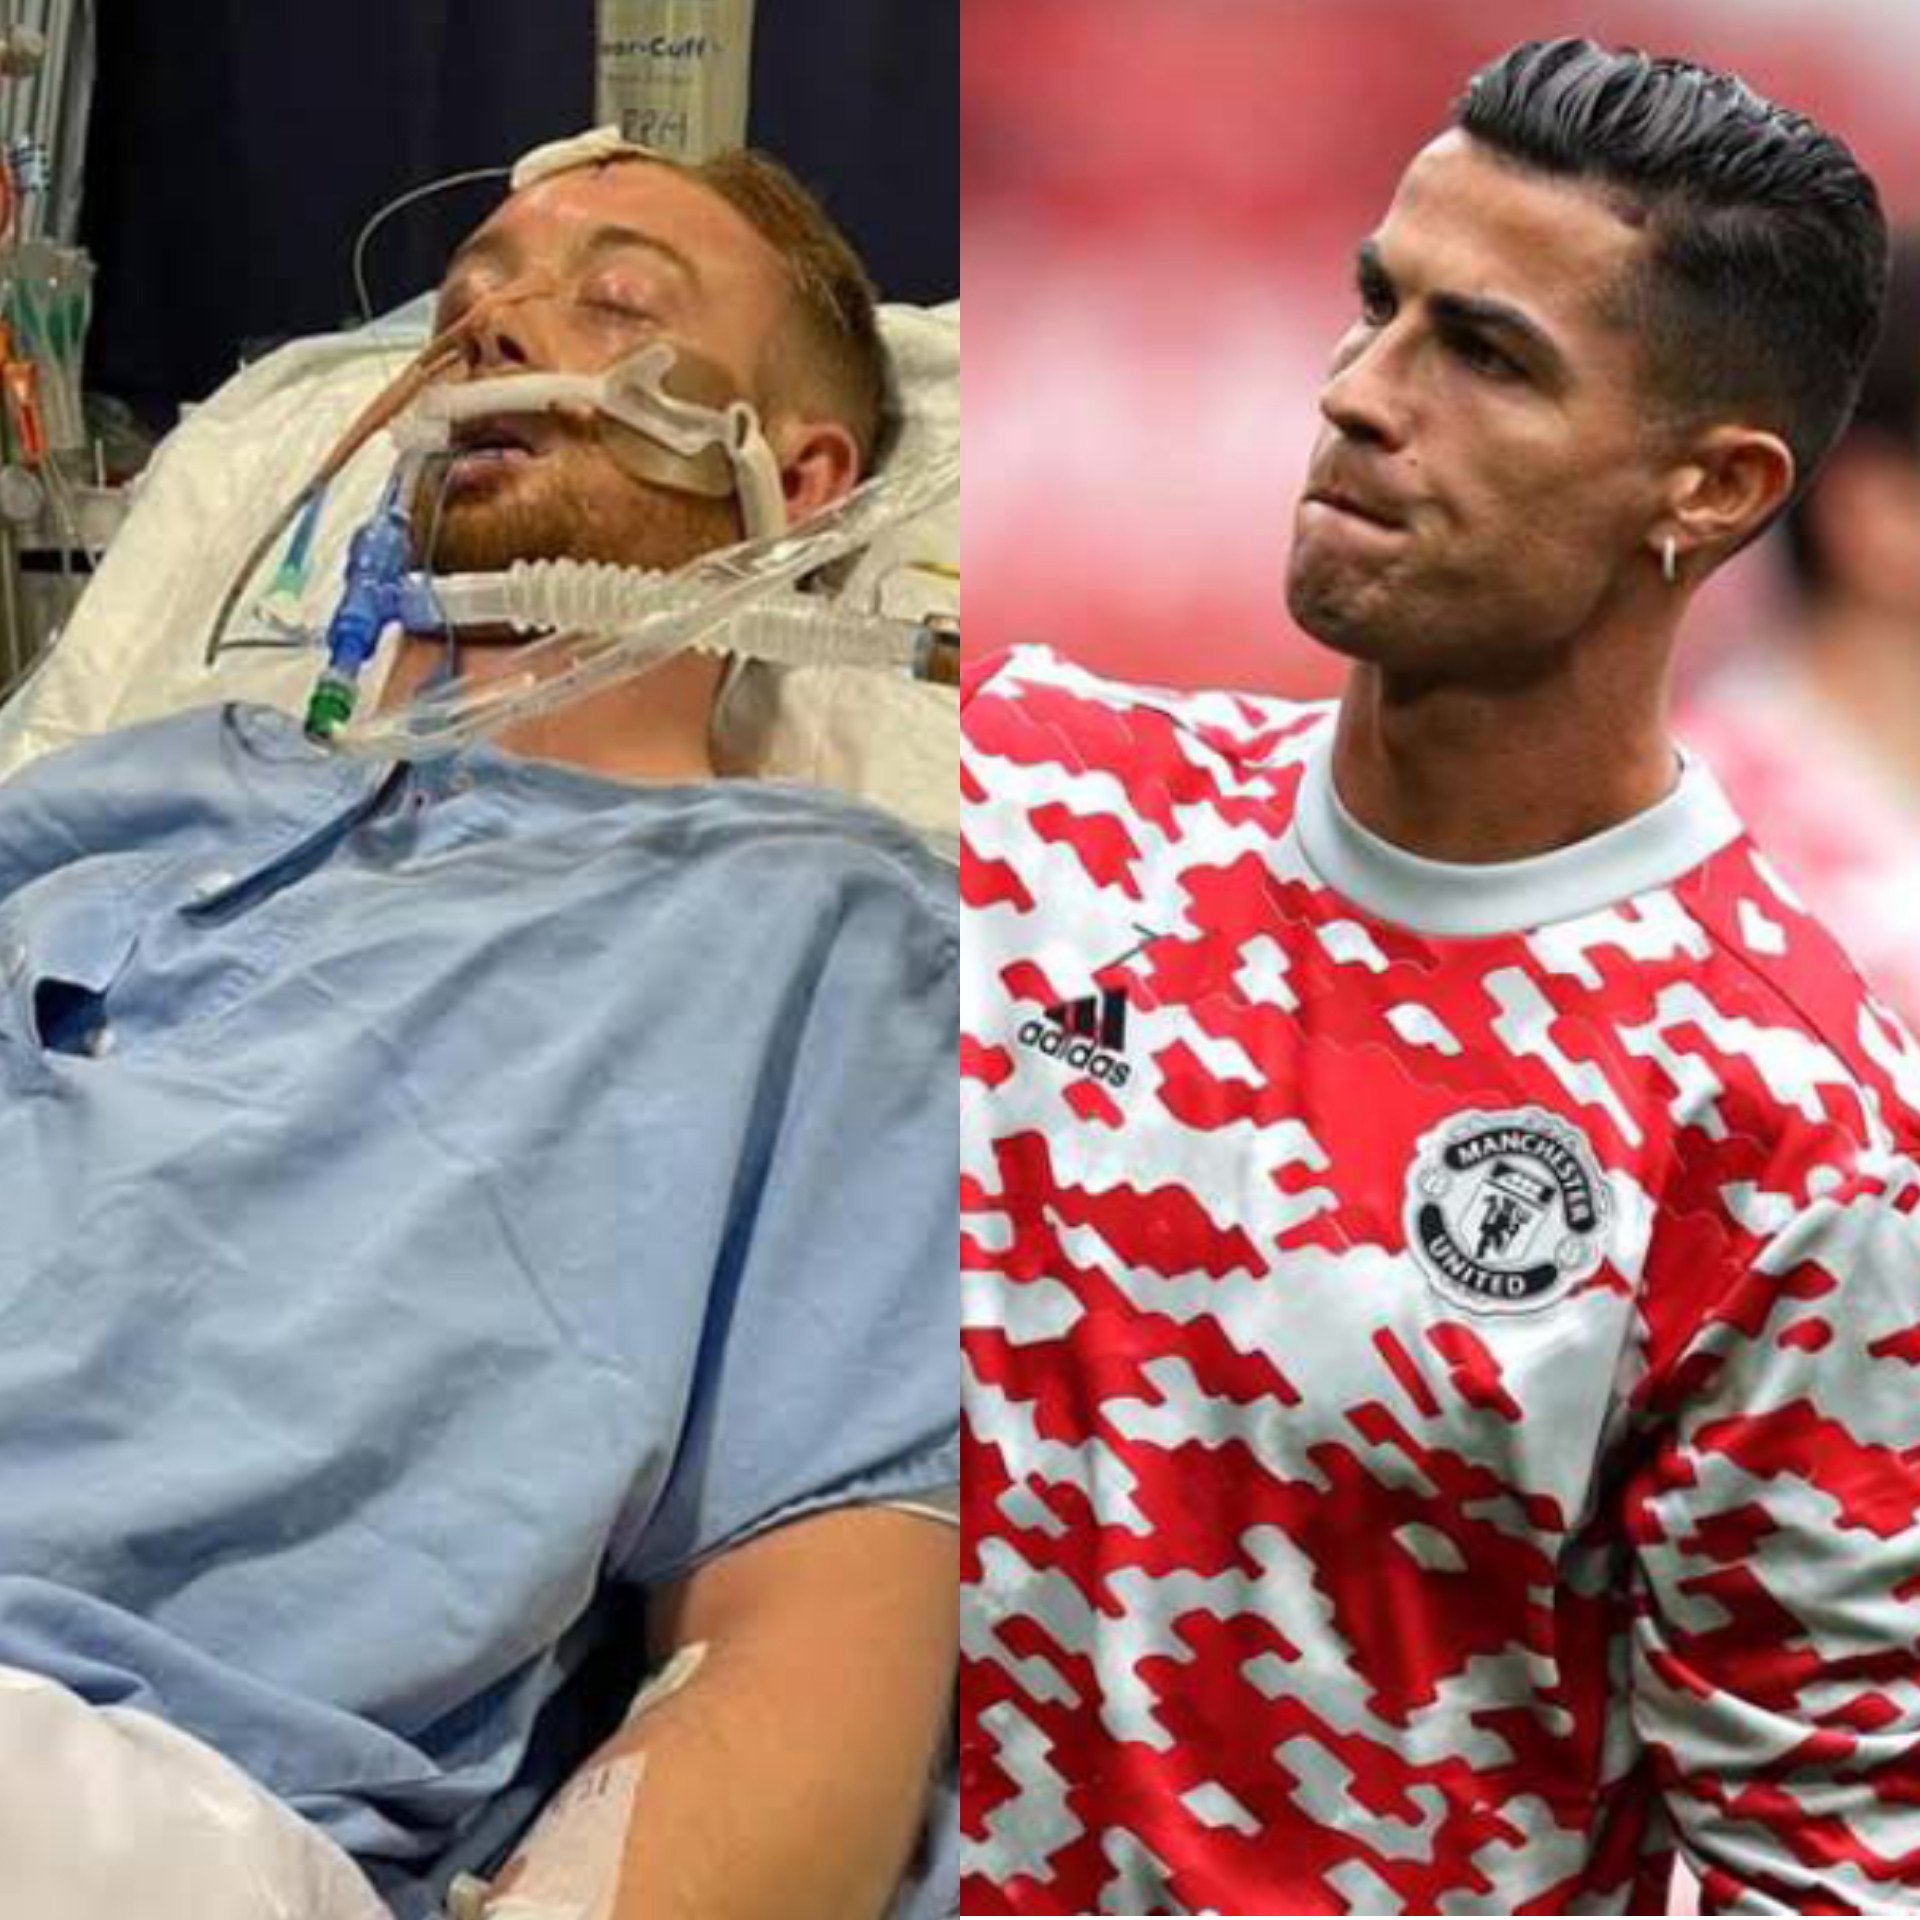 Cristiano Ronaldo offers support to footballer Danny Hodgson in Intensive care fighting for his life